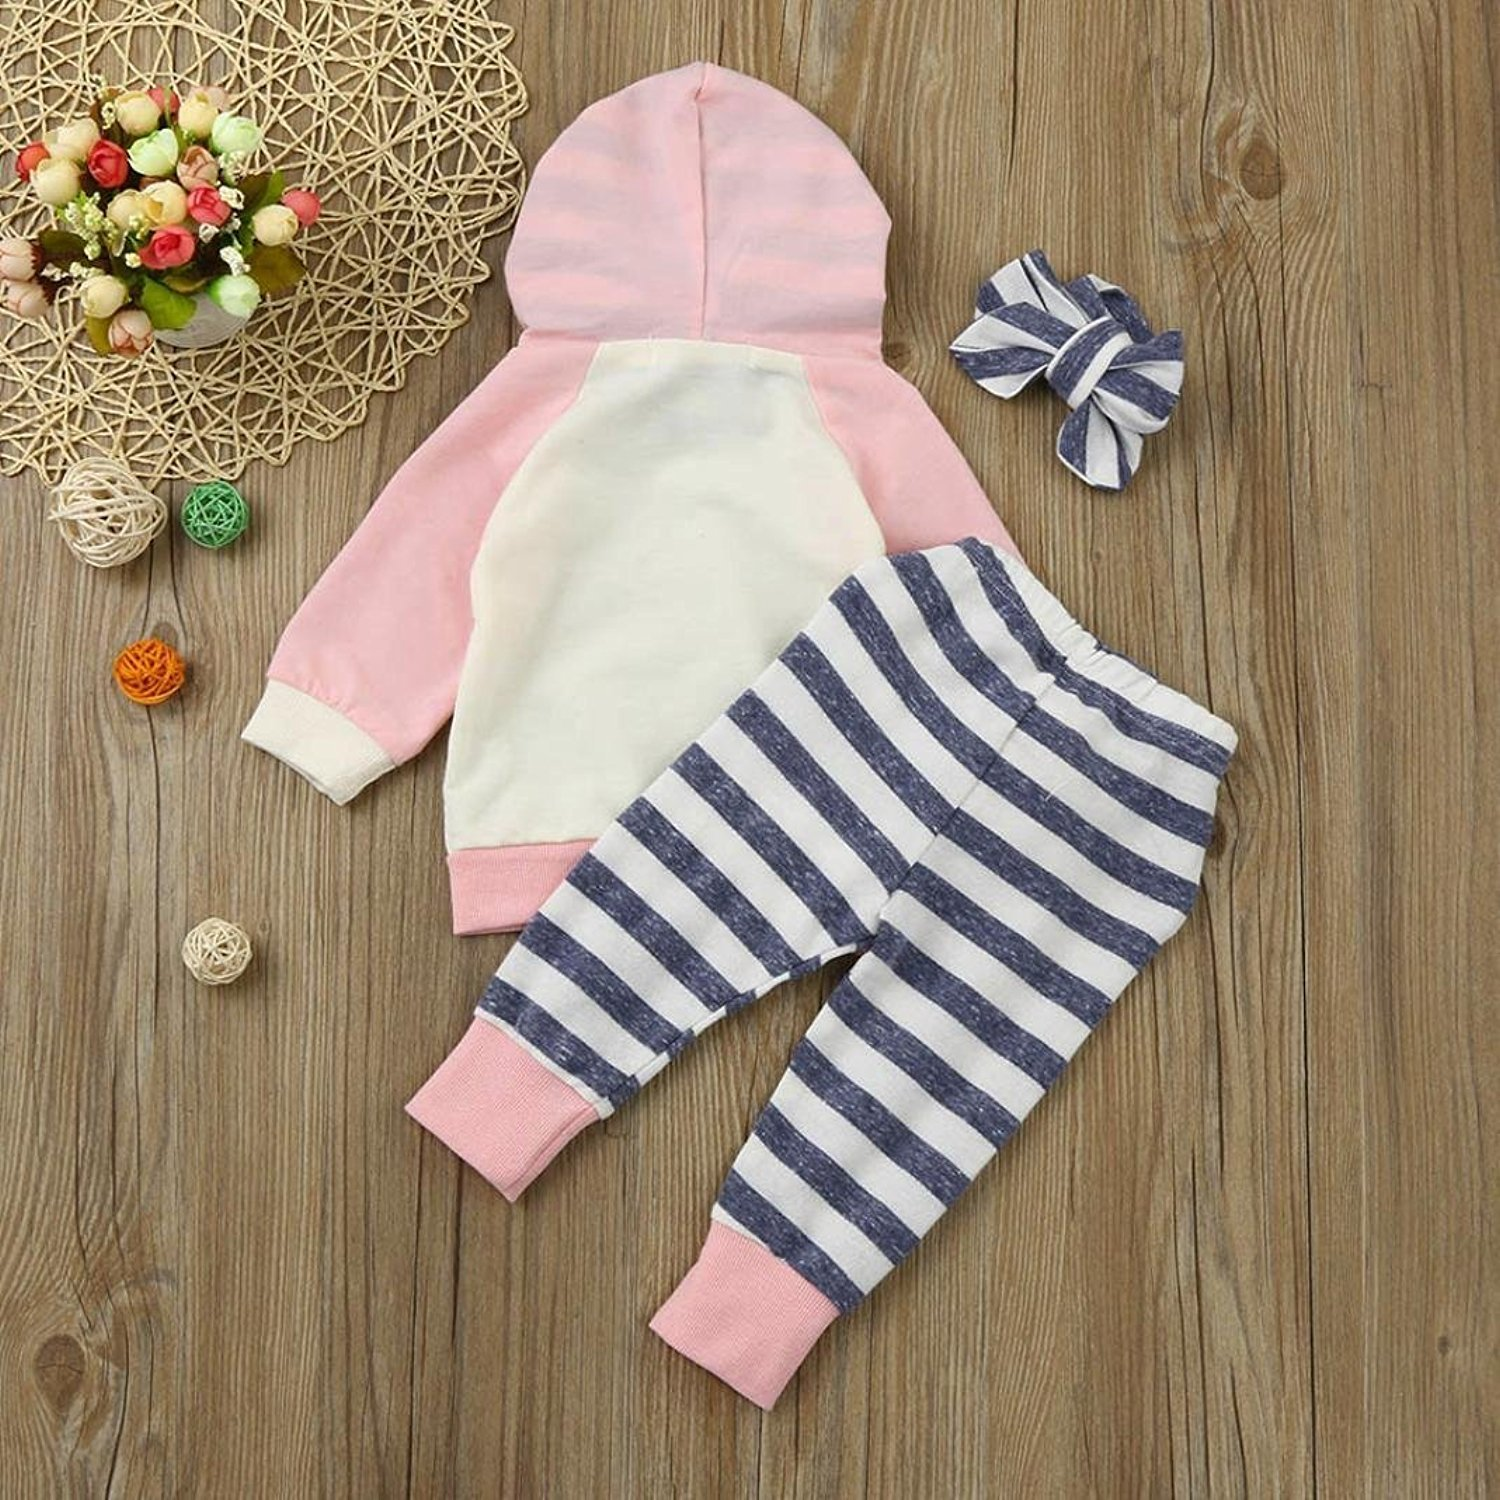 Baby Girls' Clothes Long Sleeve Hoodie Tops, Striped Pants+Headband Outfits Set (18-24 Months) by TUEMOS (Image #4)